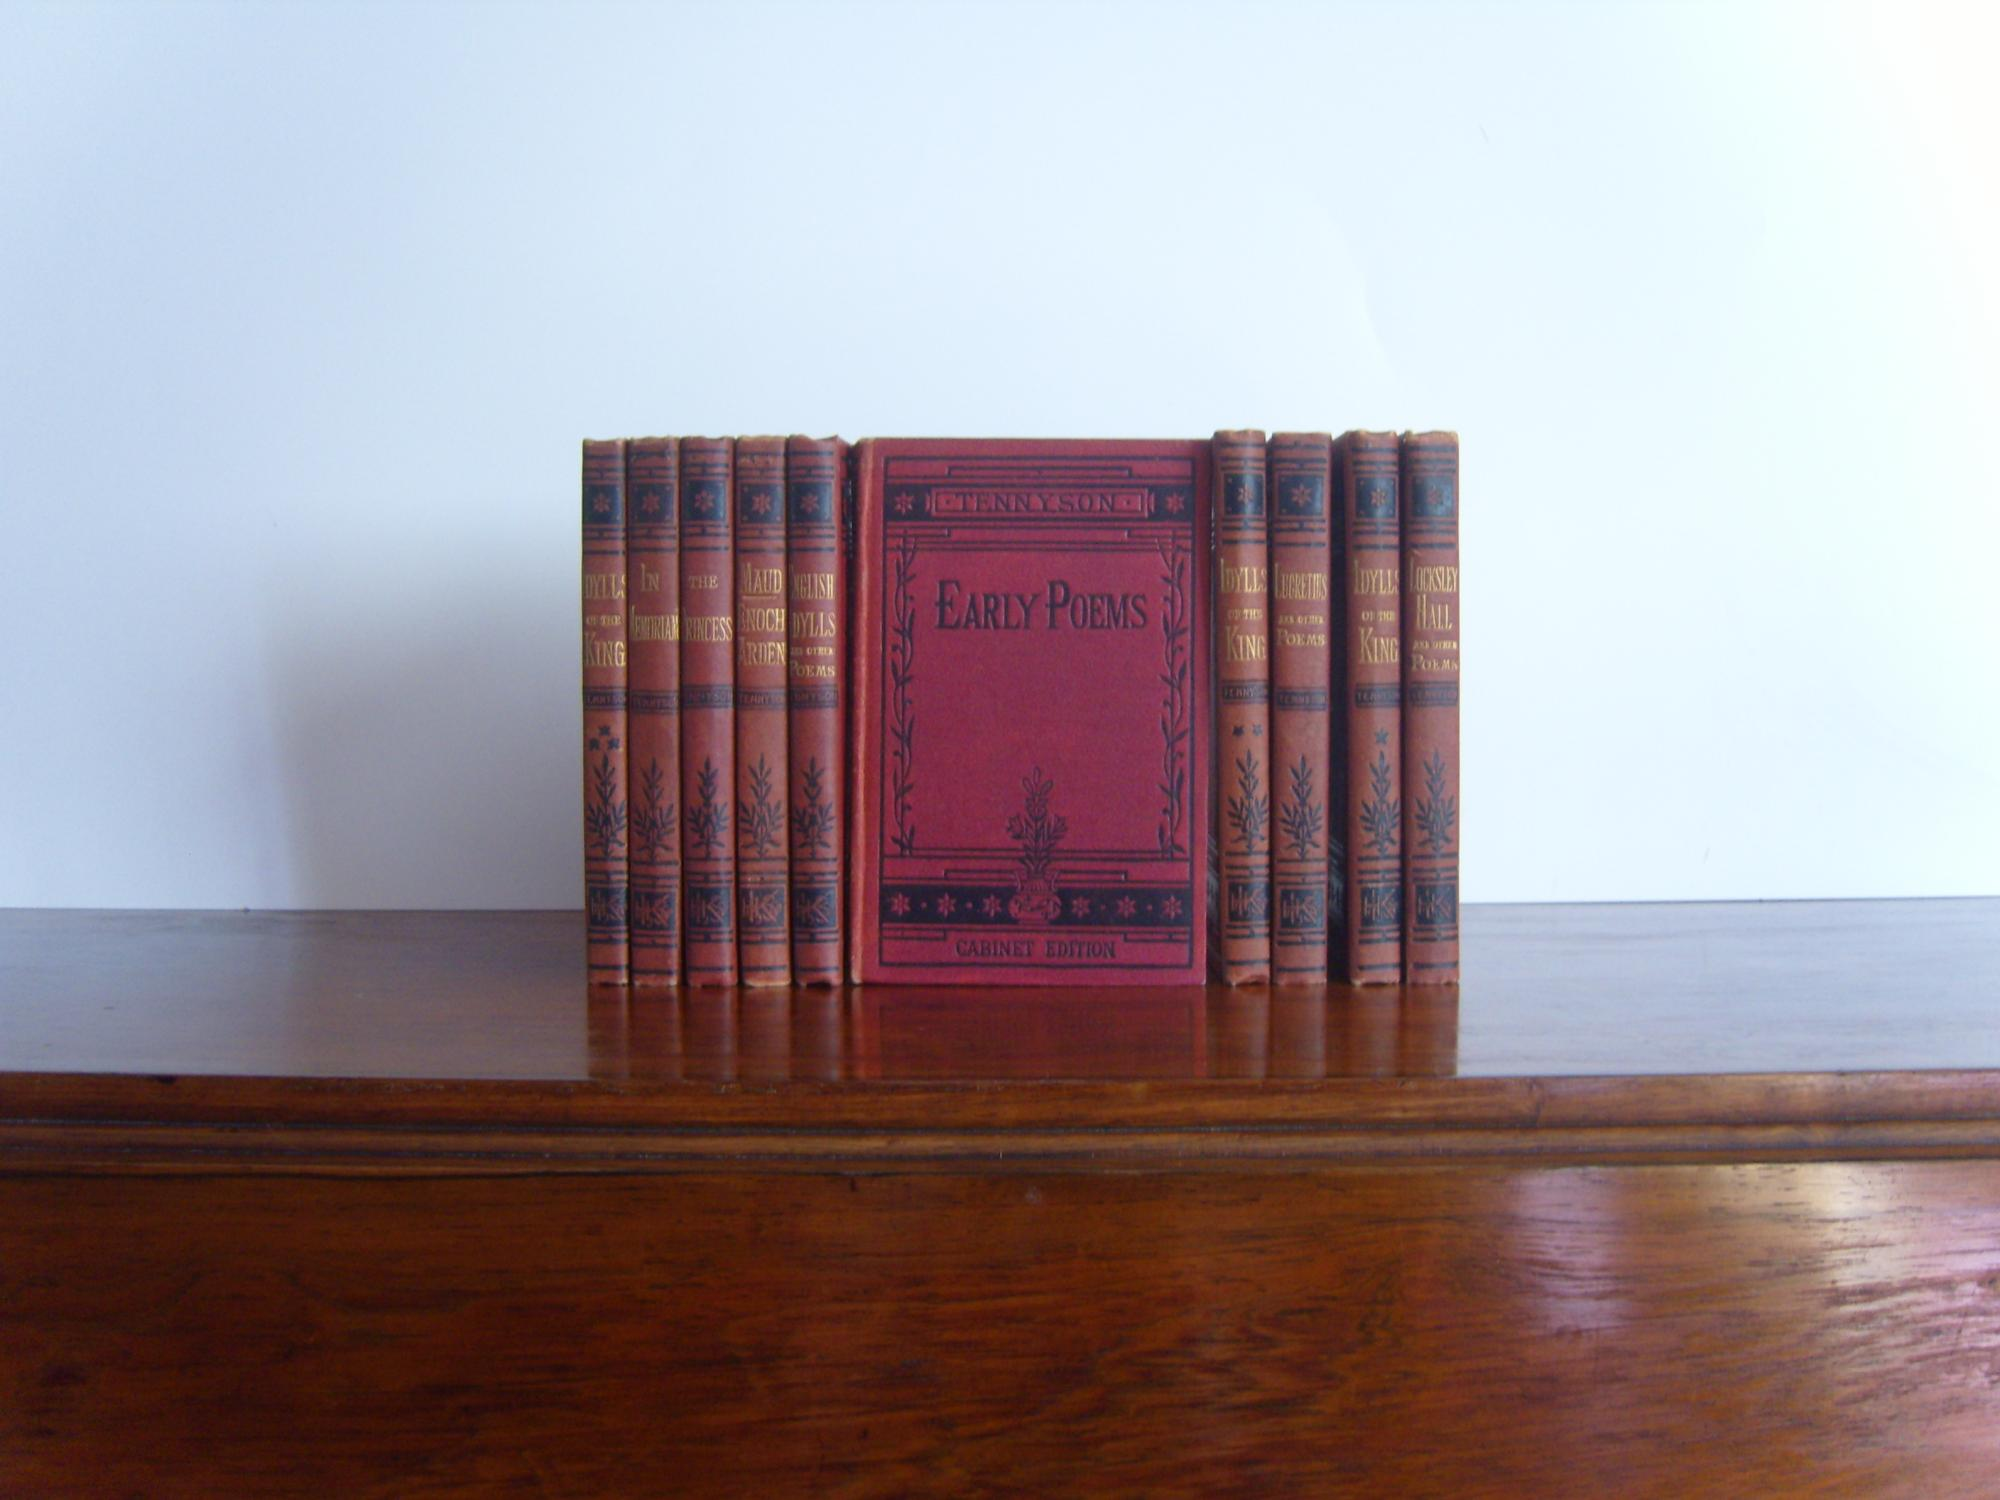 The Cabinet Edition Of Mr Tennysonu0027s Works. 10 Volume Set.: Tennyson, Alfred